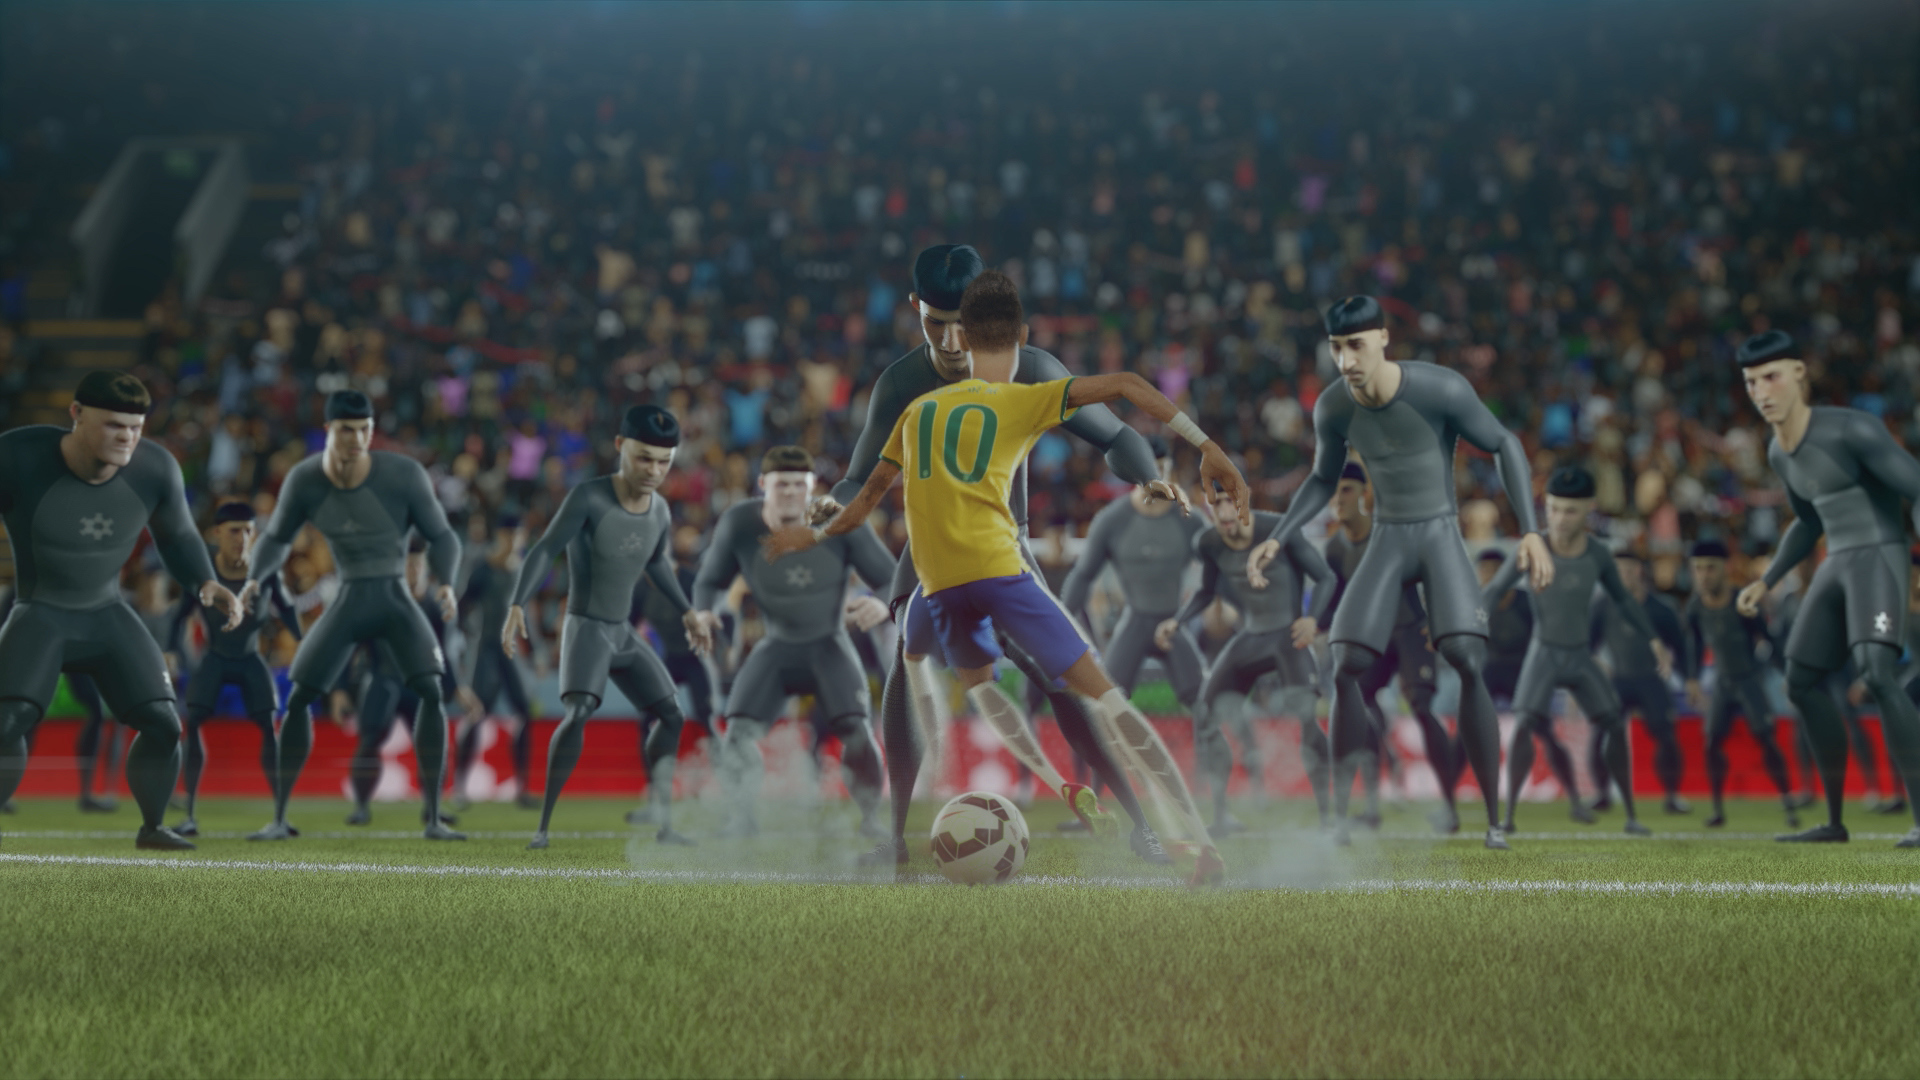 Nike Football Risks Everything in The Last Game - The ...